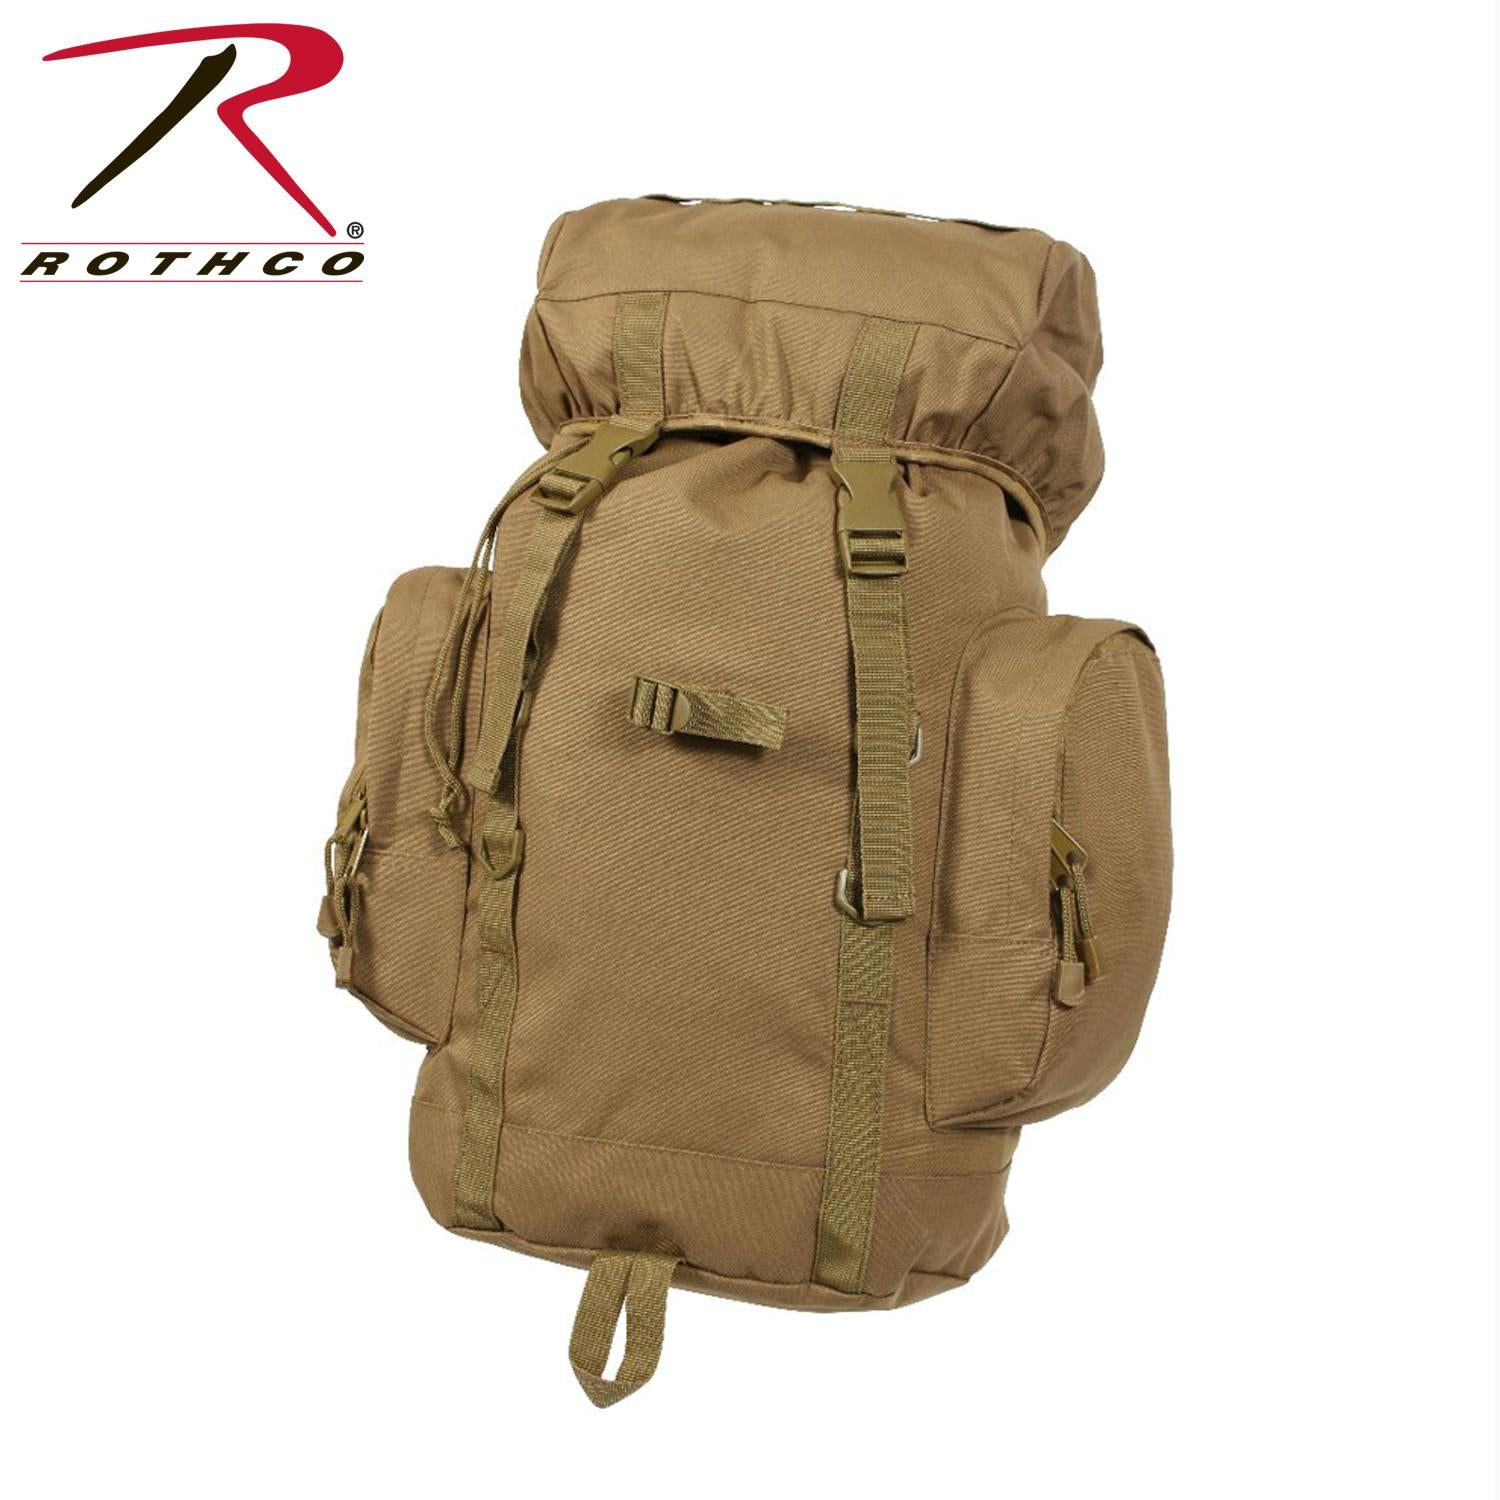 Rothco 25L Tactical Backpack - Coyote Brown